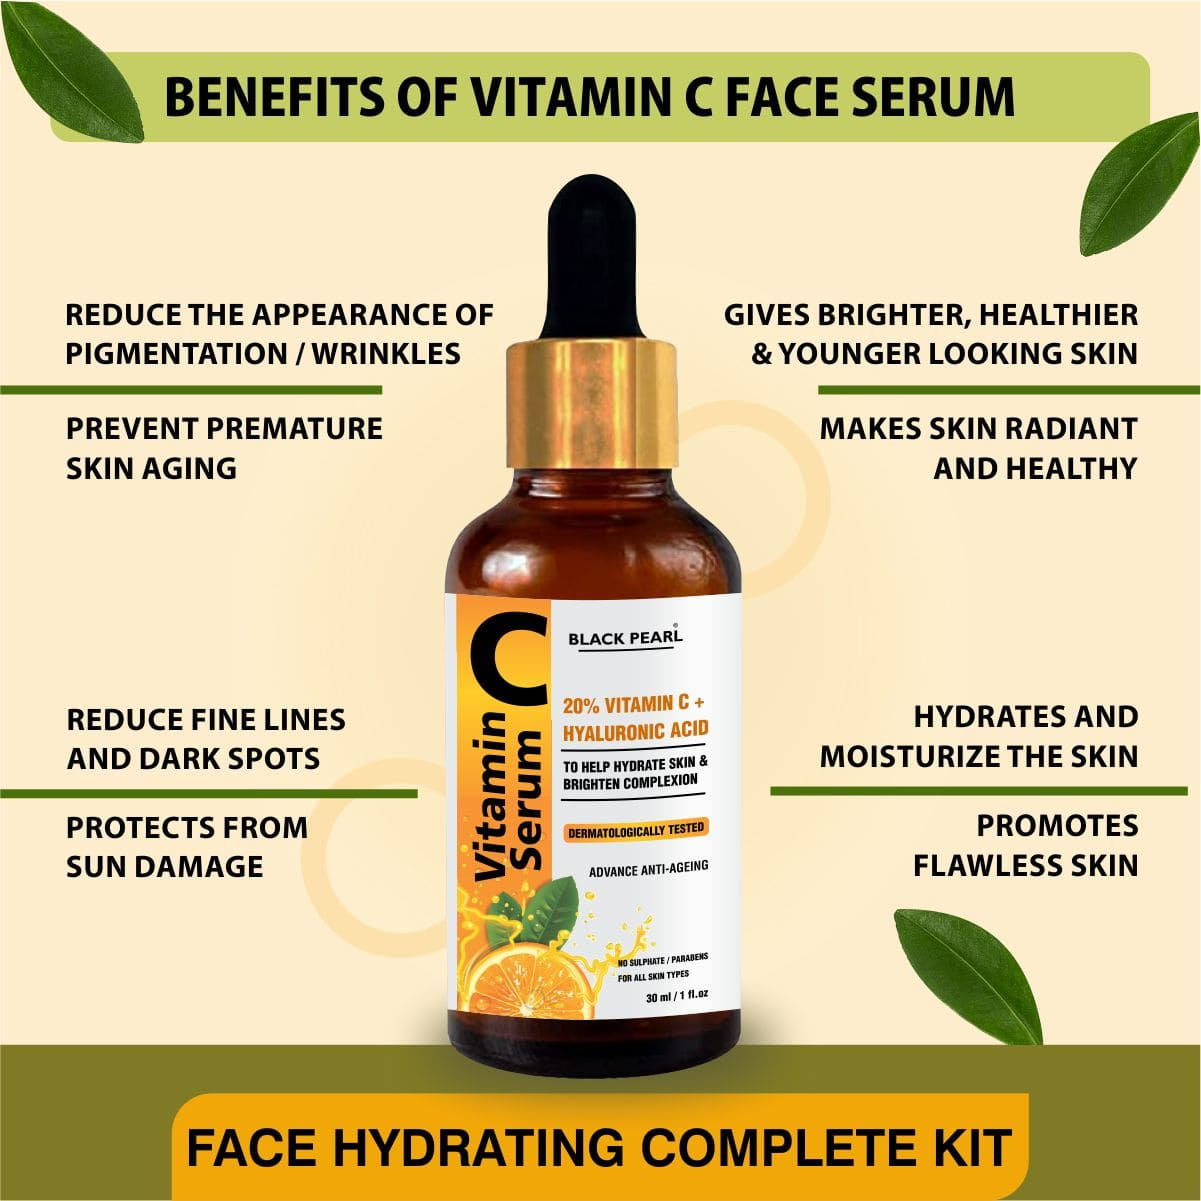 Face Hydrating Complete Kit Benefits of Vitamin C Face Serum